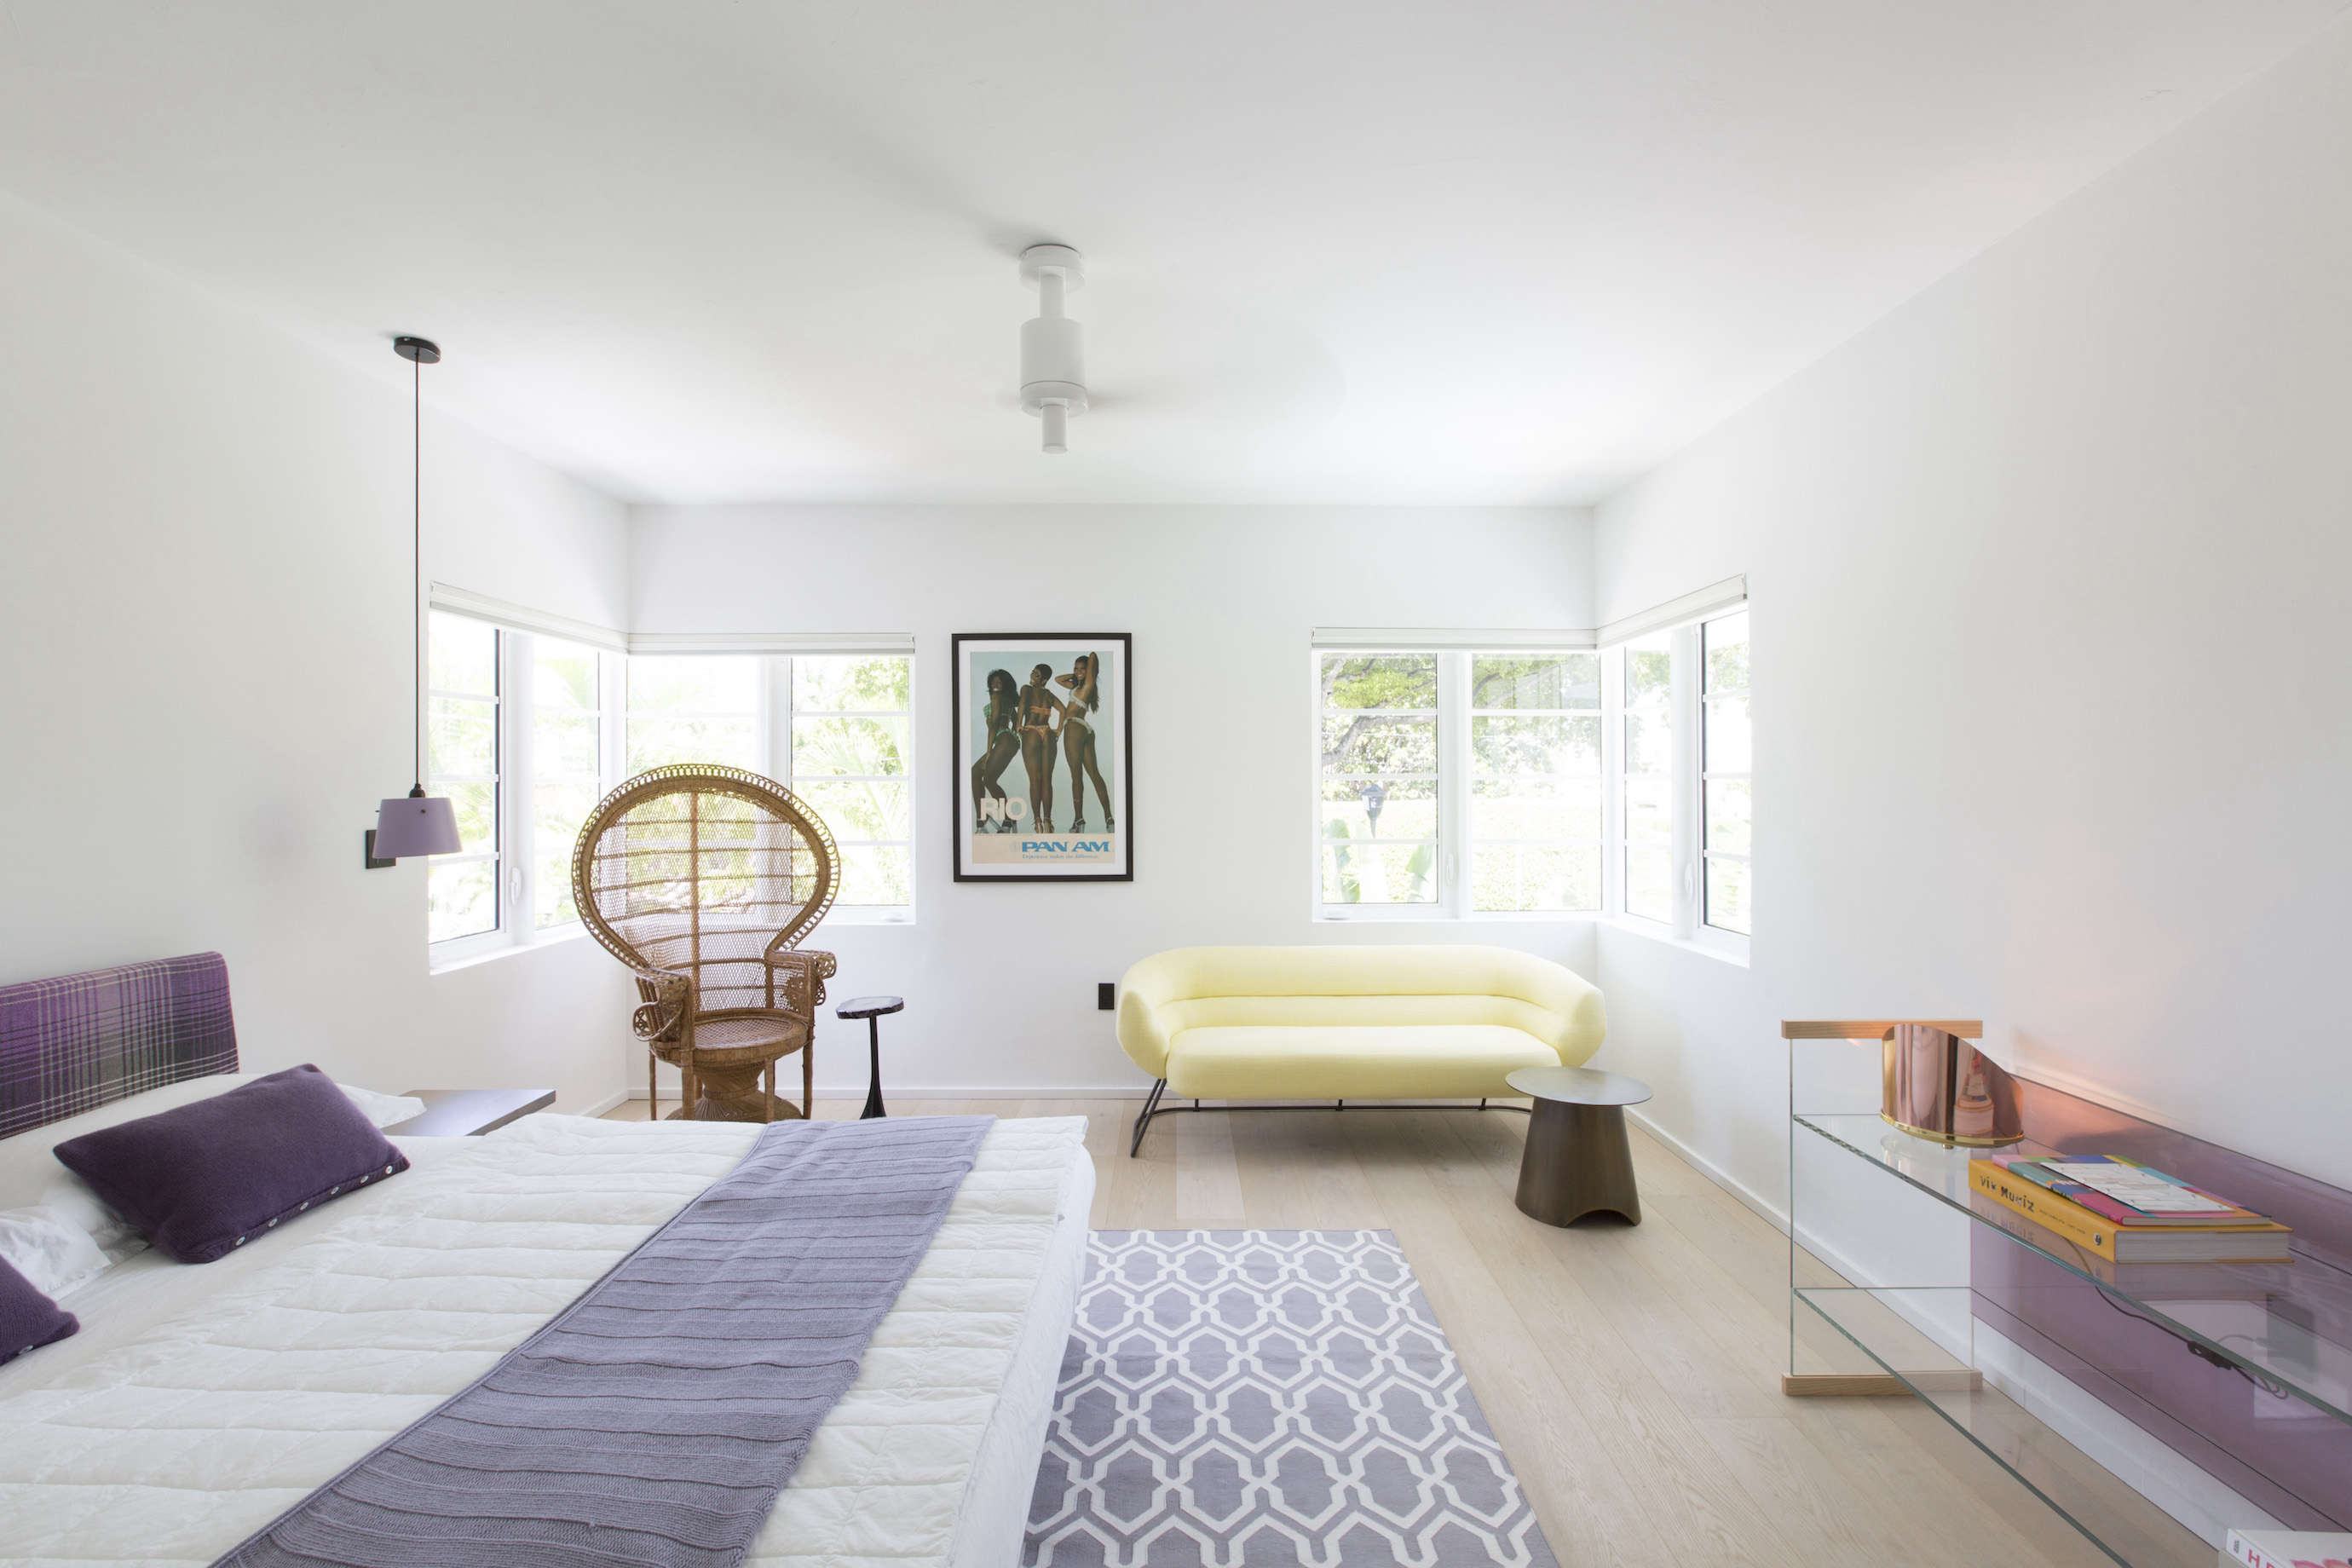 Bedroom in a revived 1932 Miami villa belonging to contemporary furniture dealer Stephan Weishaupt of Avenue Road, Max Zambelli photo   Remodelista